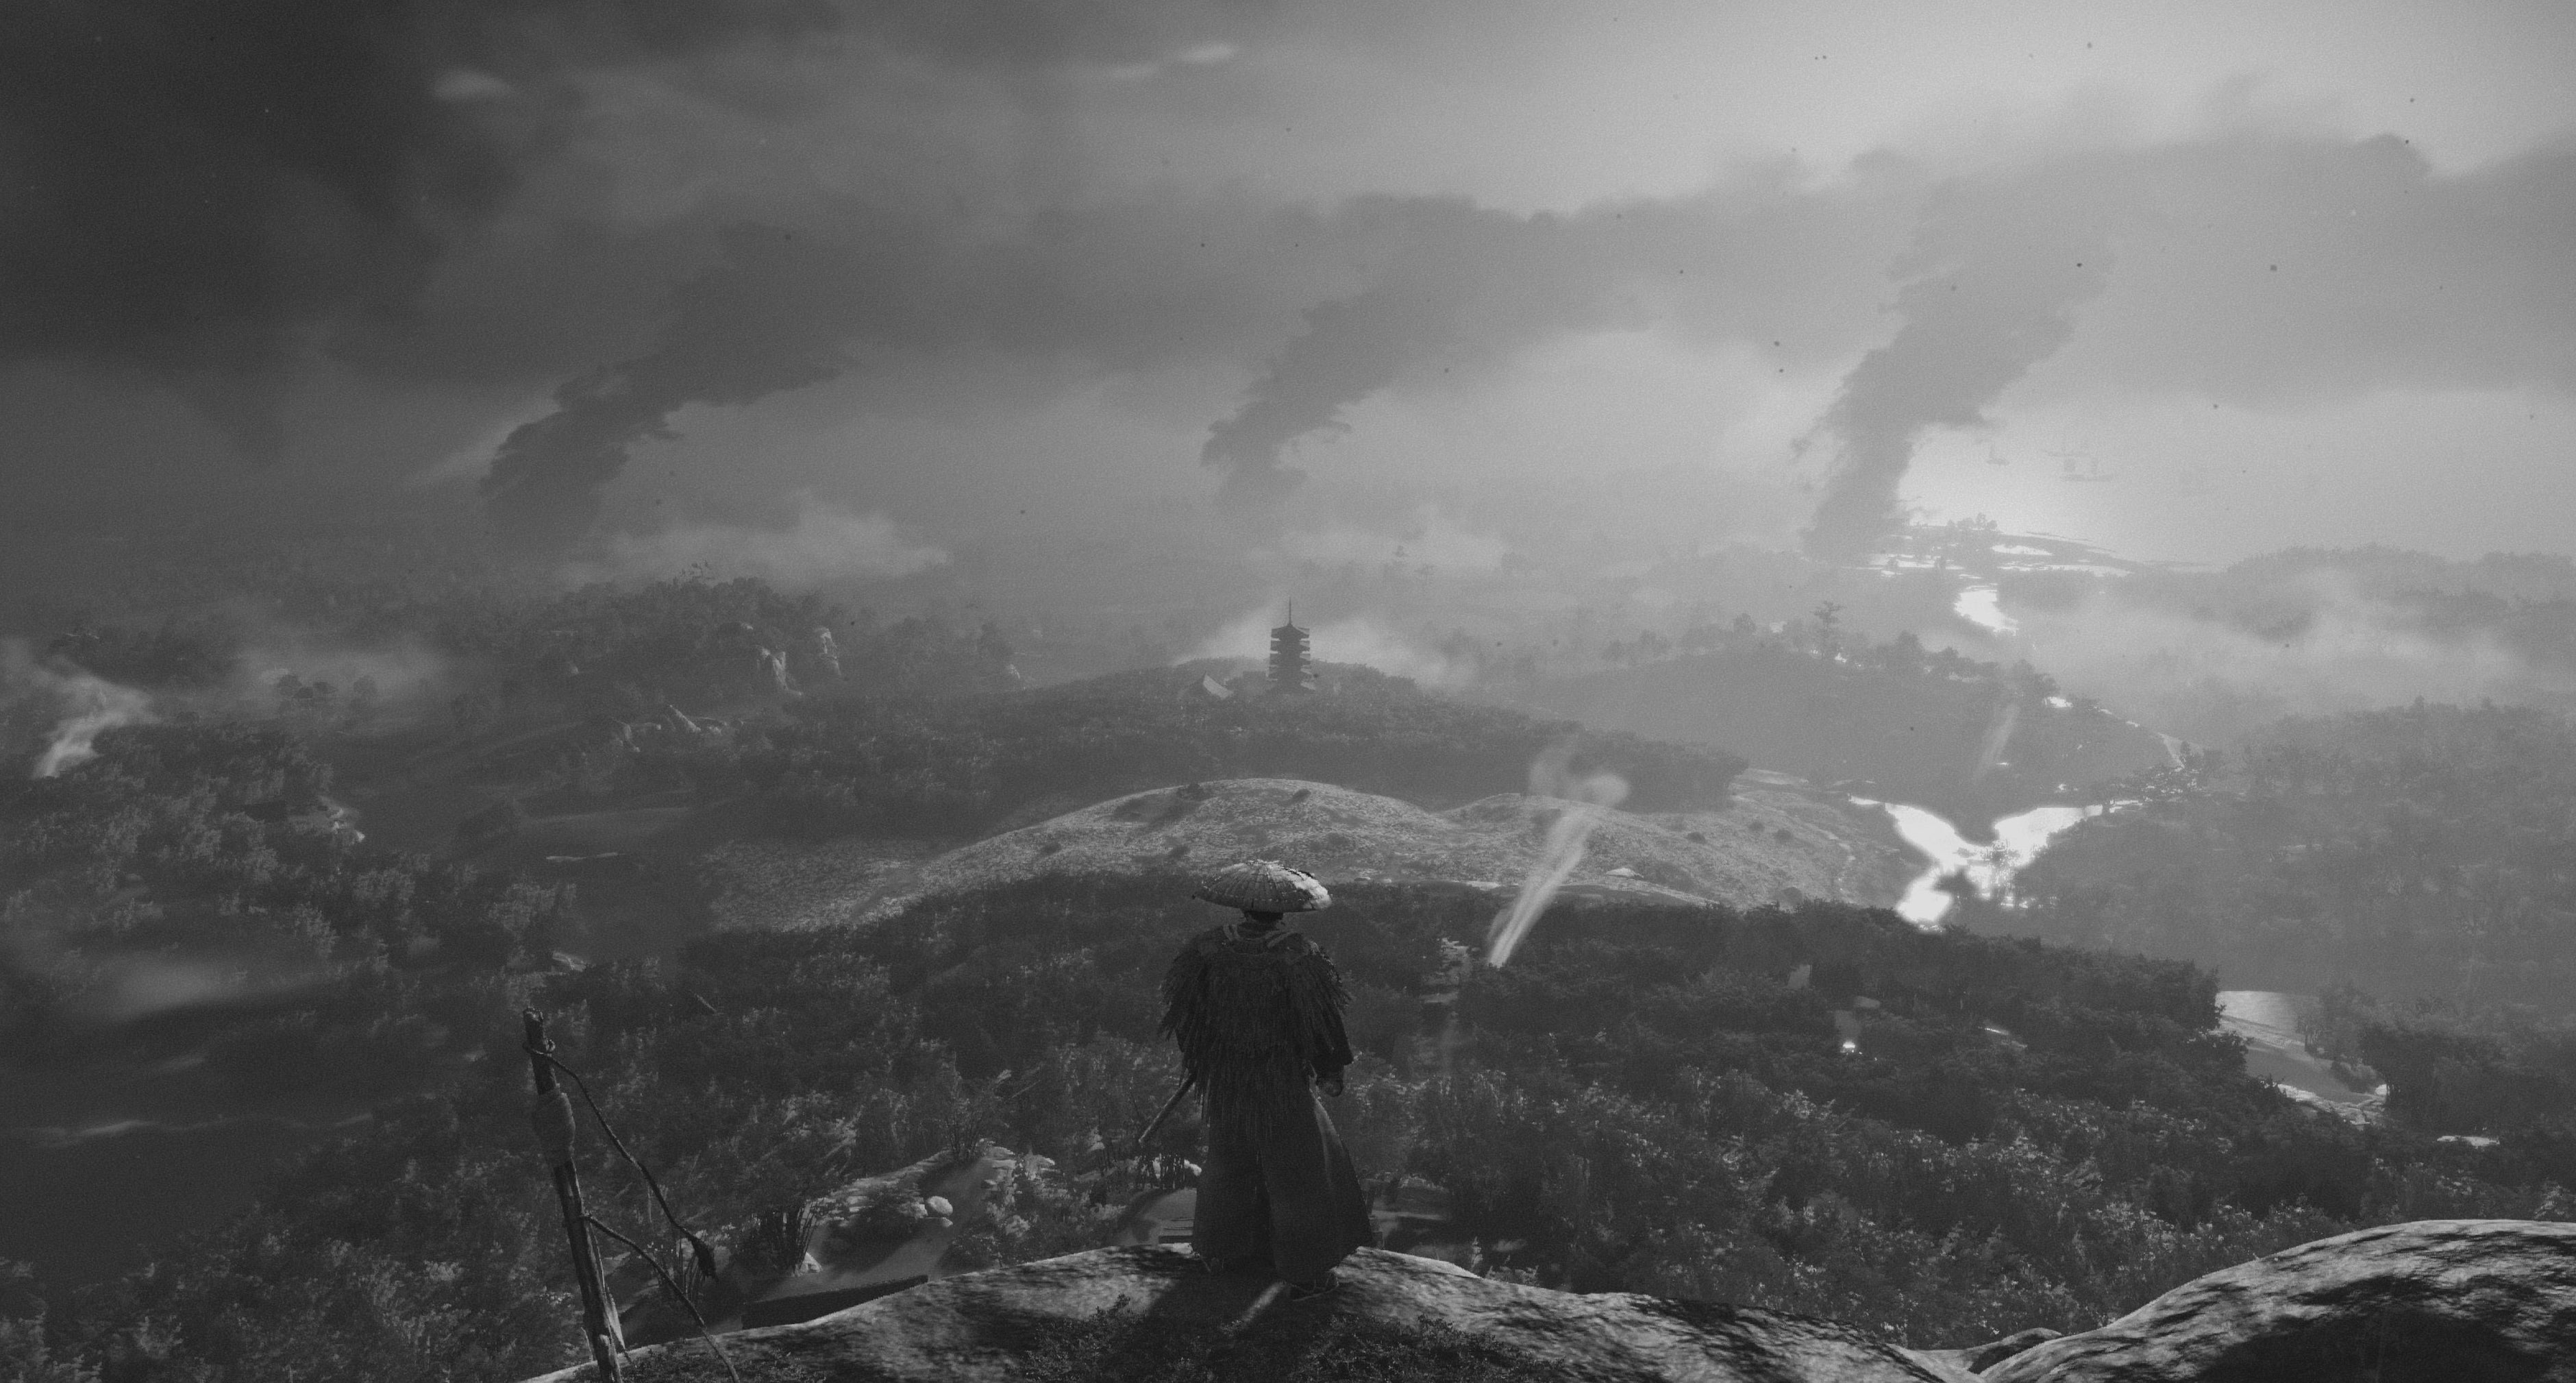 A samurai stands on a hill overlooking a desolate town in Ghost of Tsushima